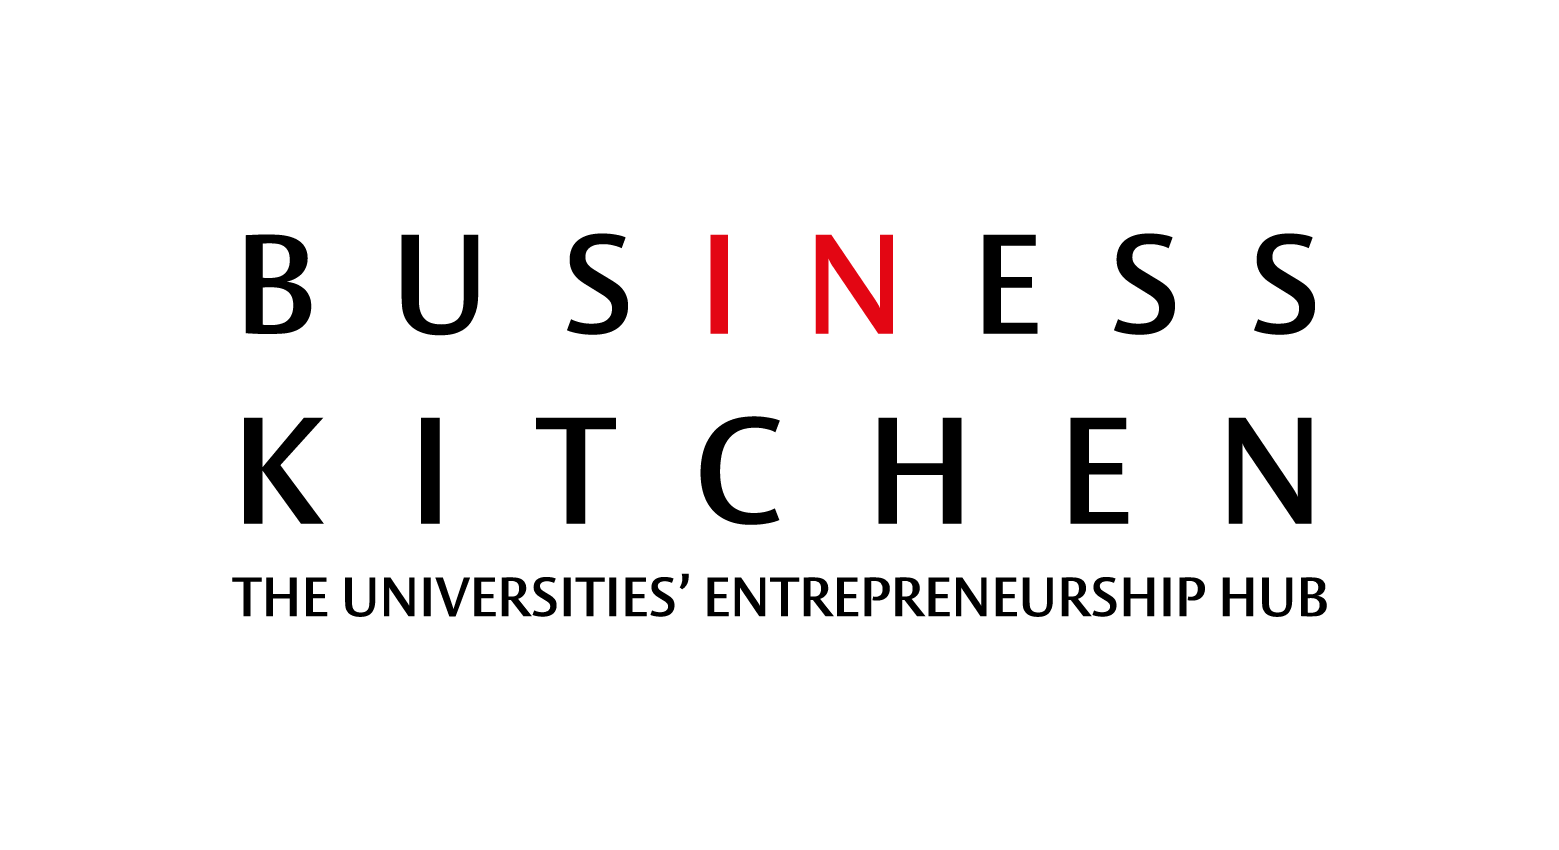 Business Kitchen logo & slogan, 300dpi